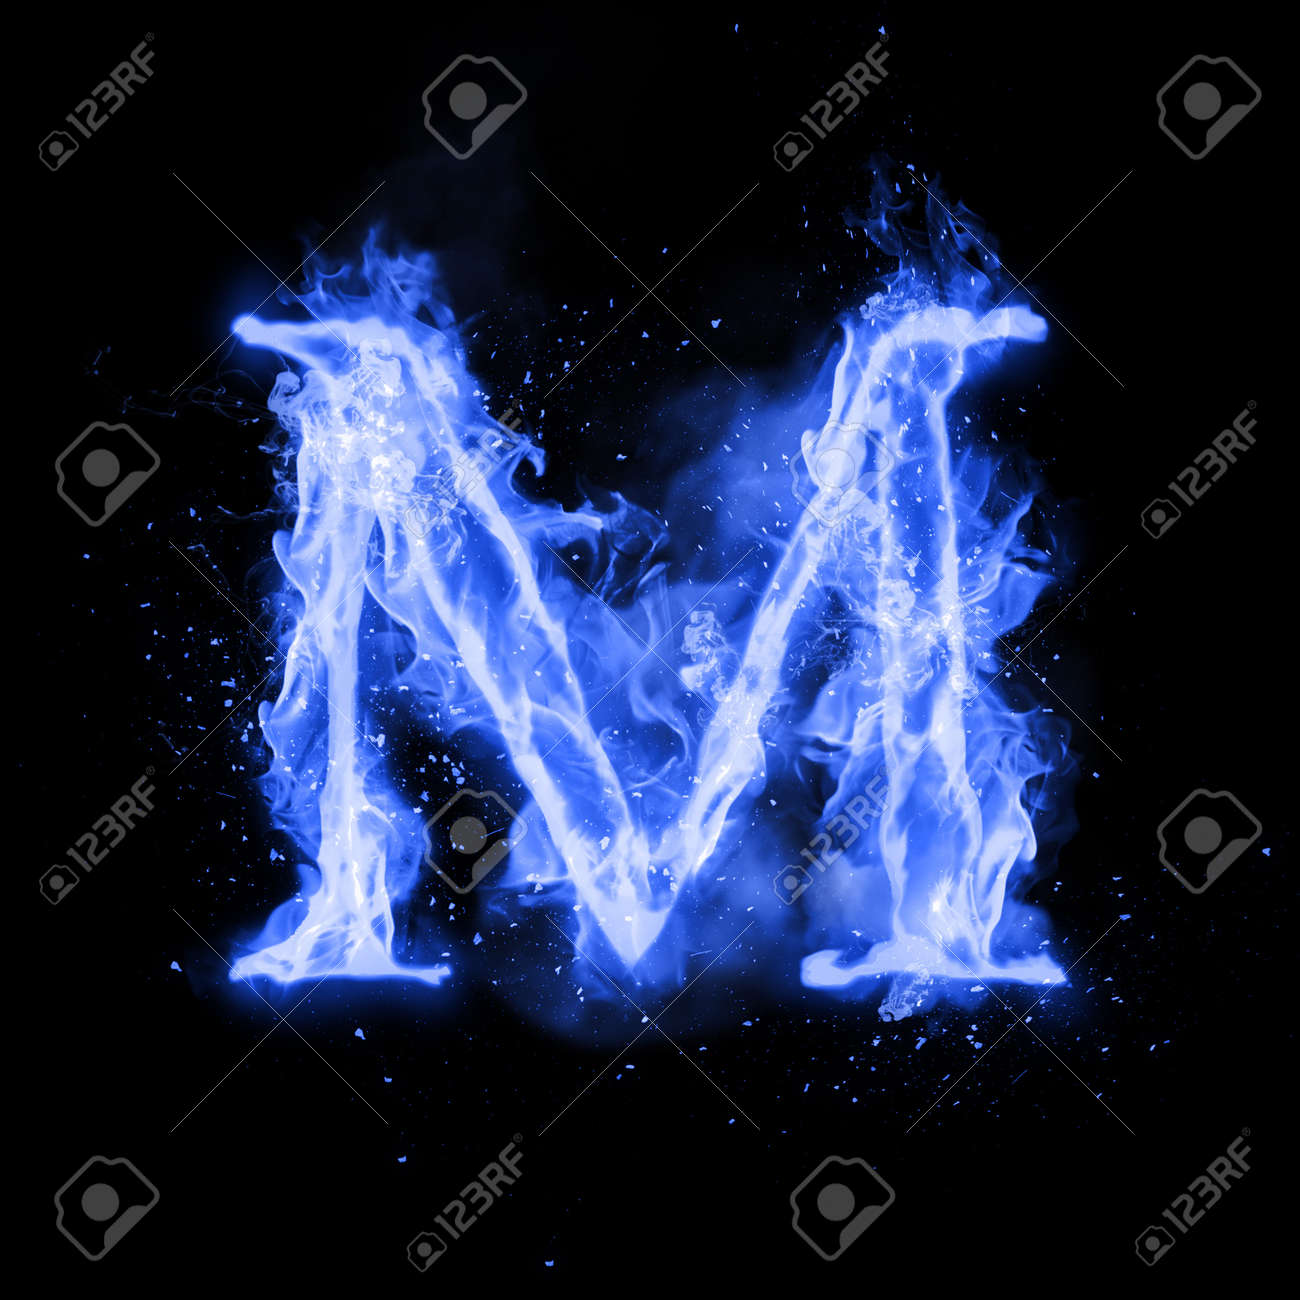 Fire letter m of burning blue flame flaming burn font or bonfire fire letter m of burning blue flame flaming burn font or bonfire alphabet text with thecheapjerseys Image collections